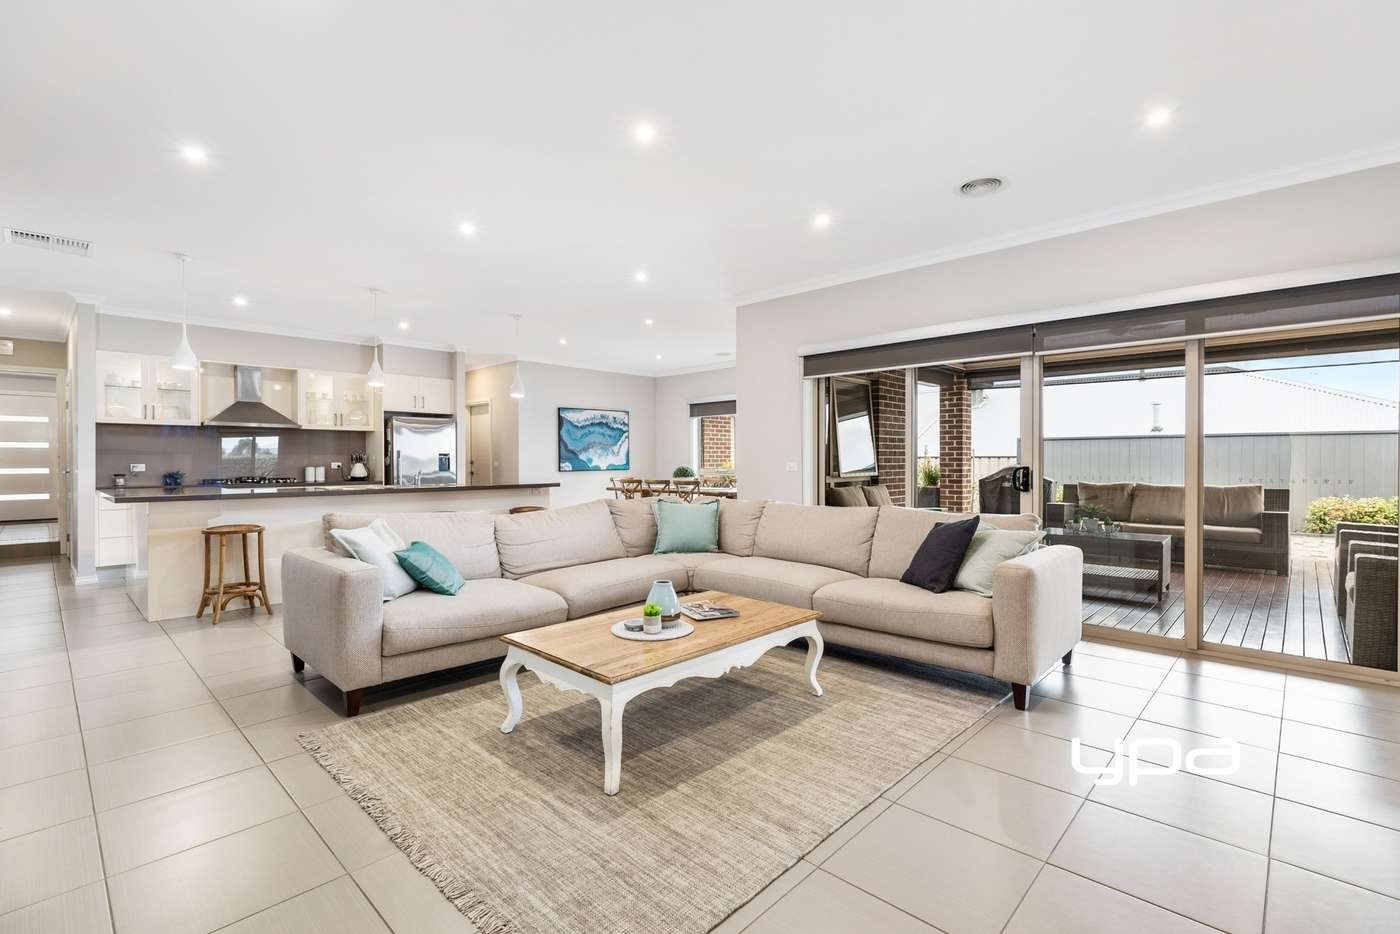 Fifth view of Homely house listing, 8 Waterloo Rise, Sunbury VIC 3429